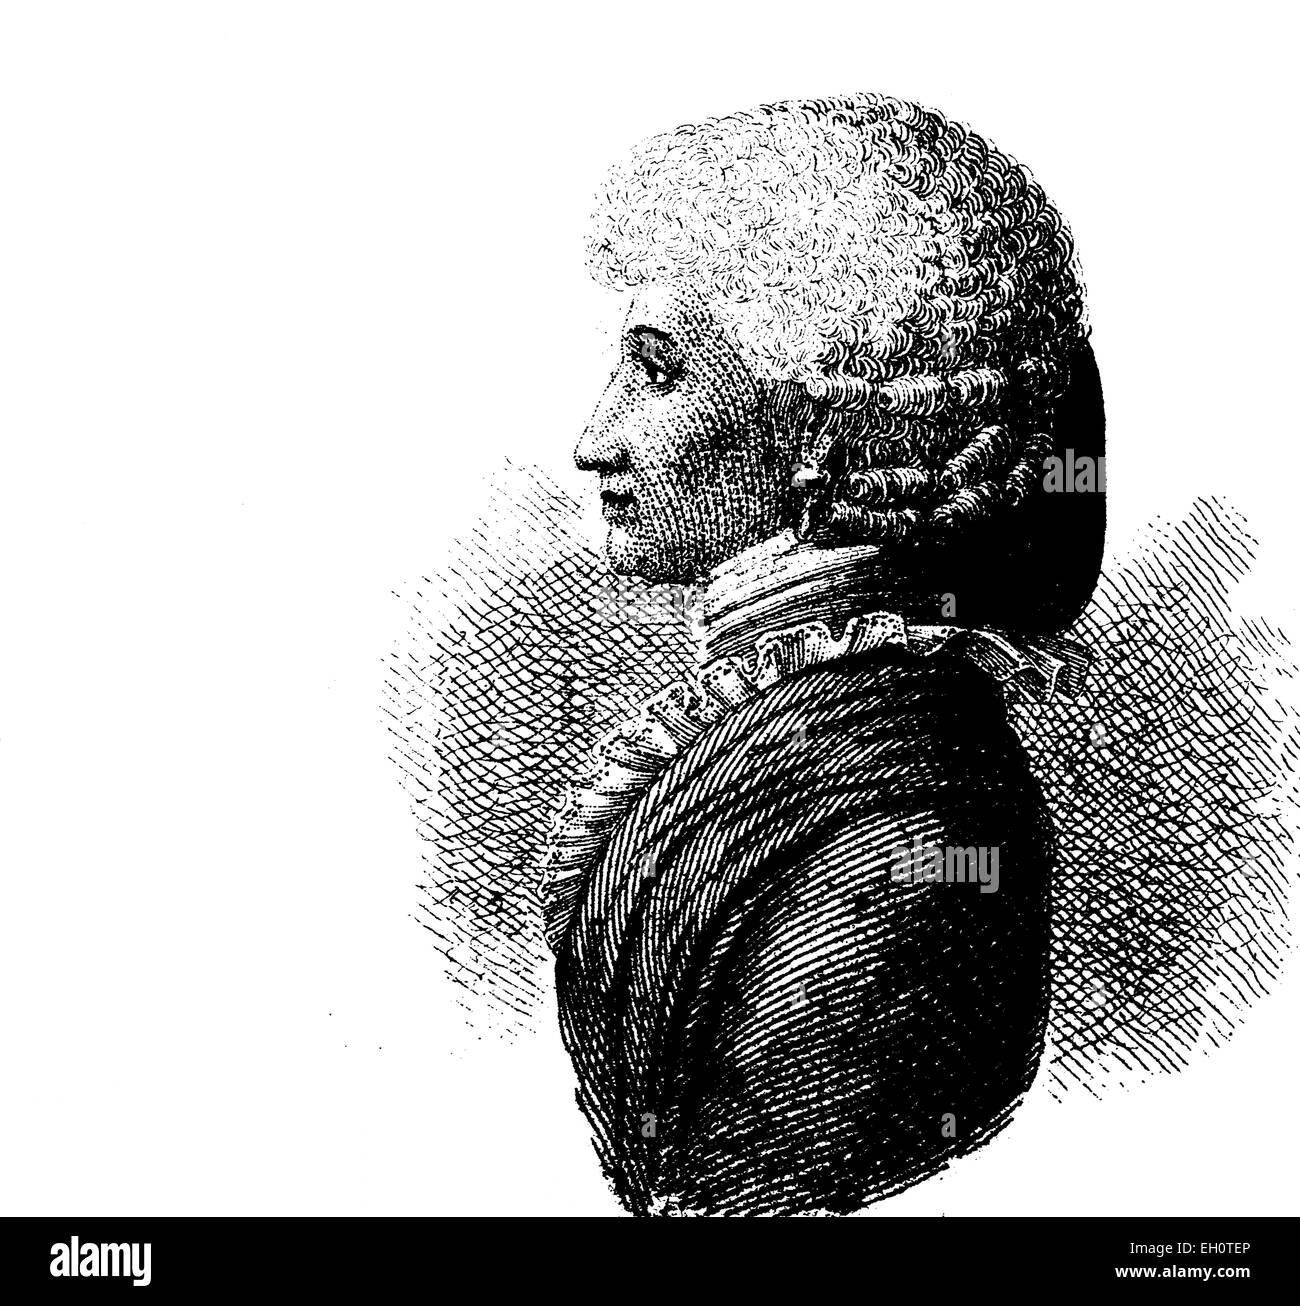 Hair fashion: women's hair style in 1800, historical illustration - Stock Image